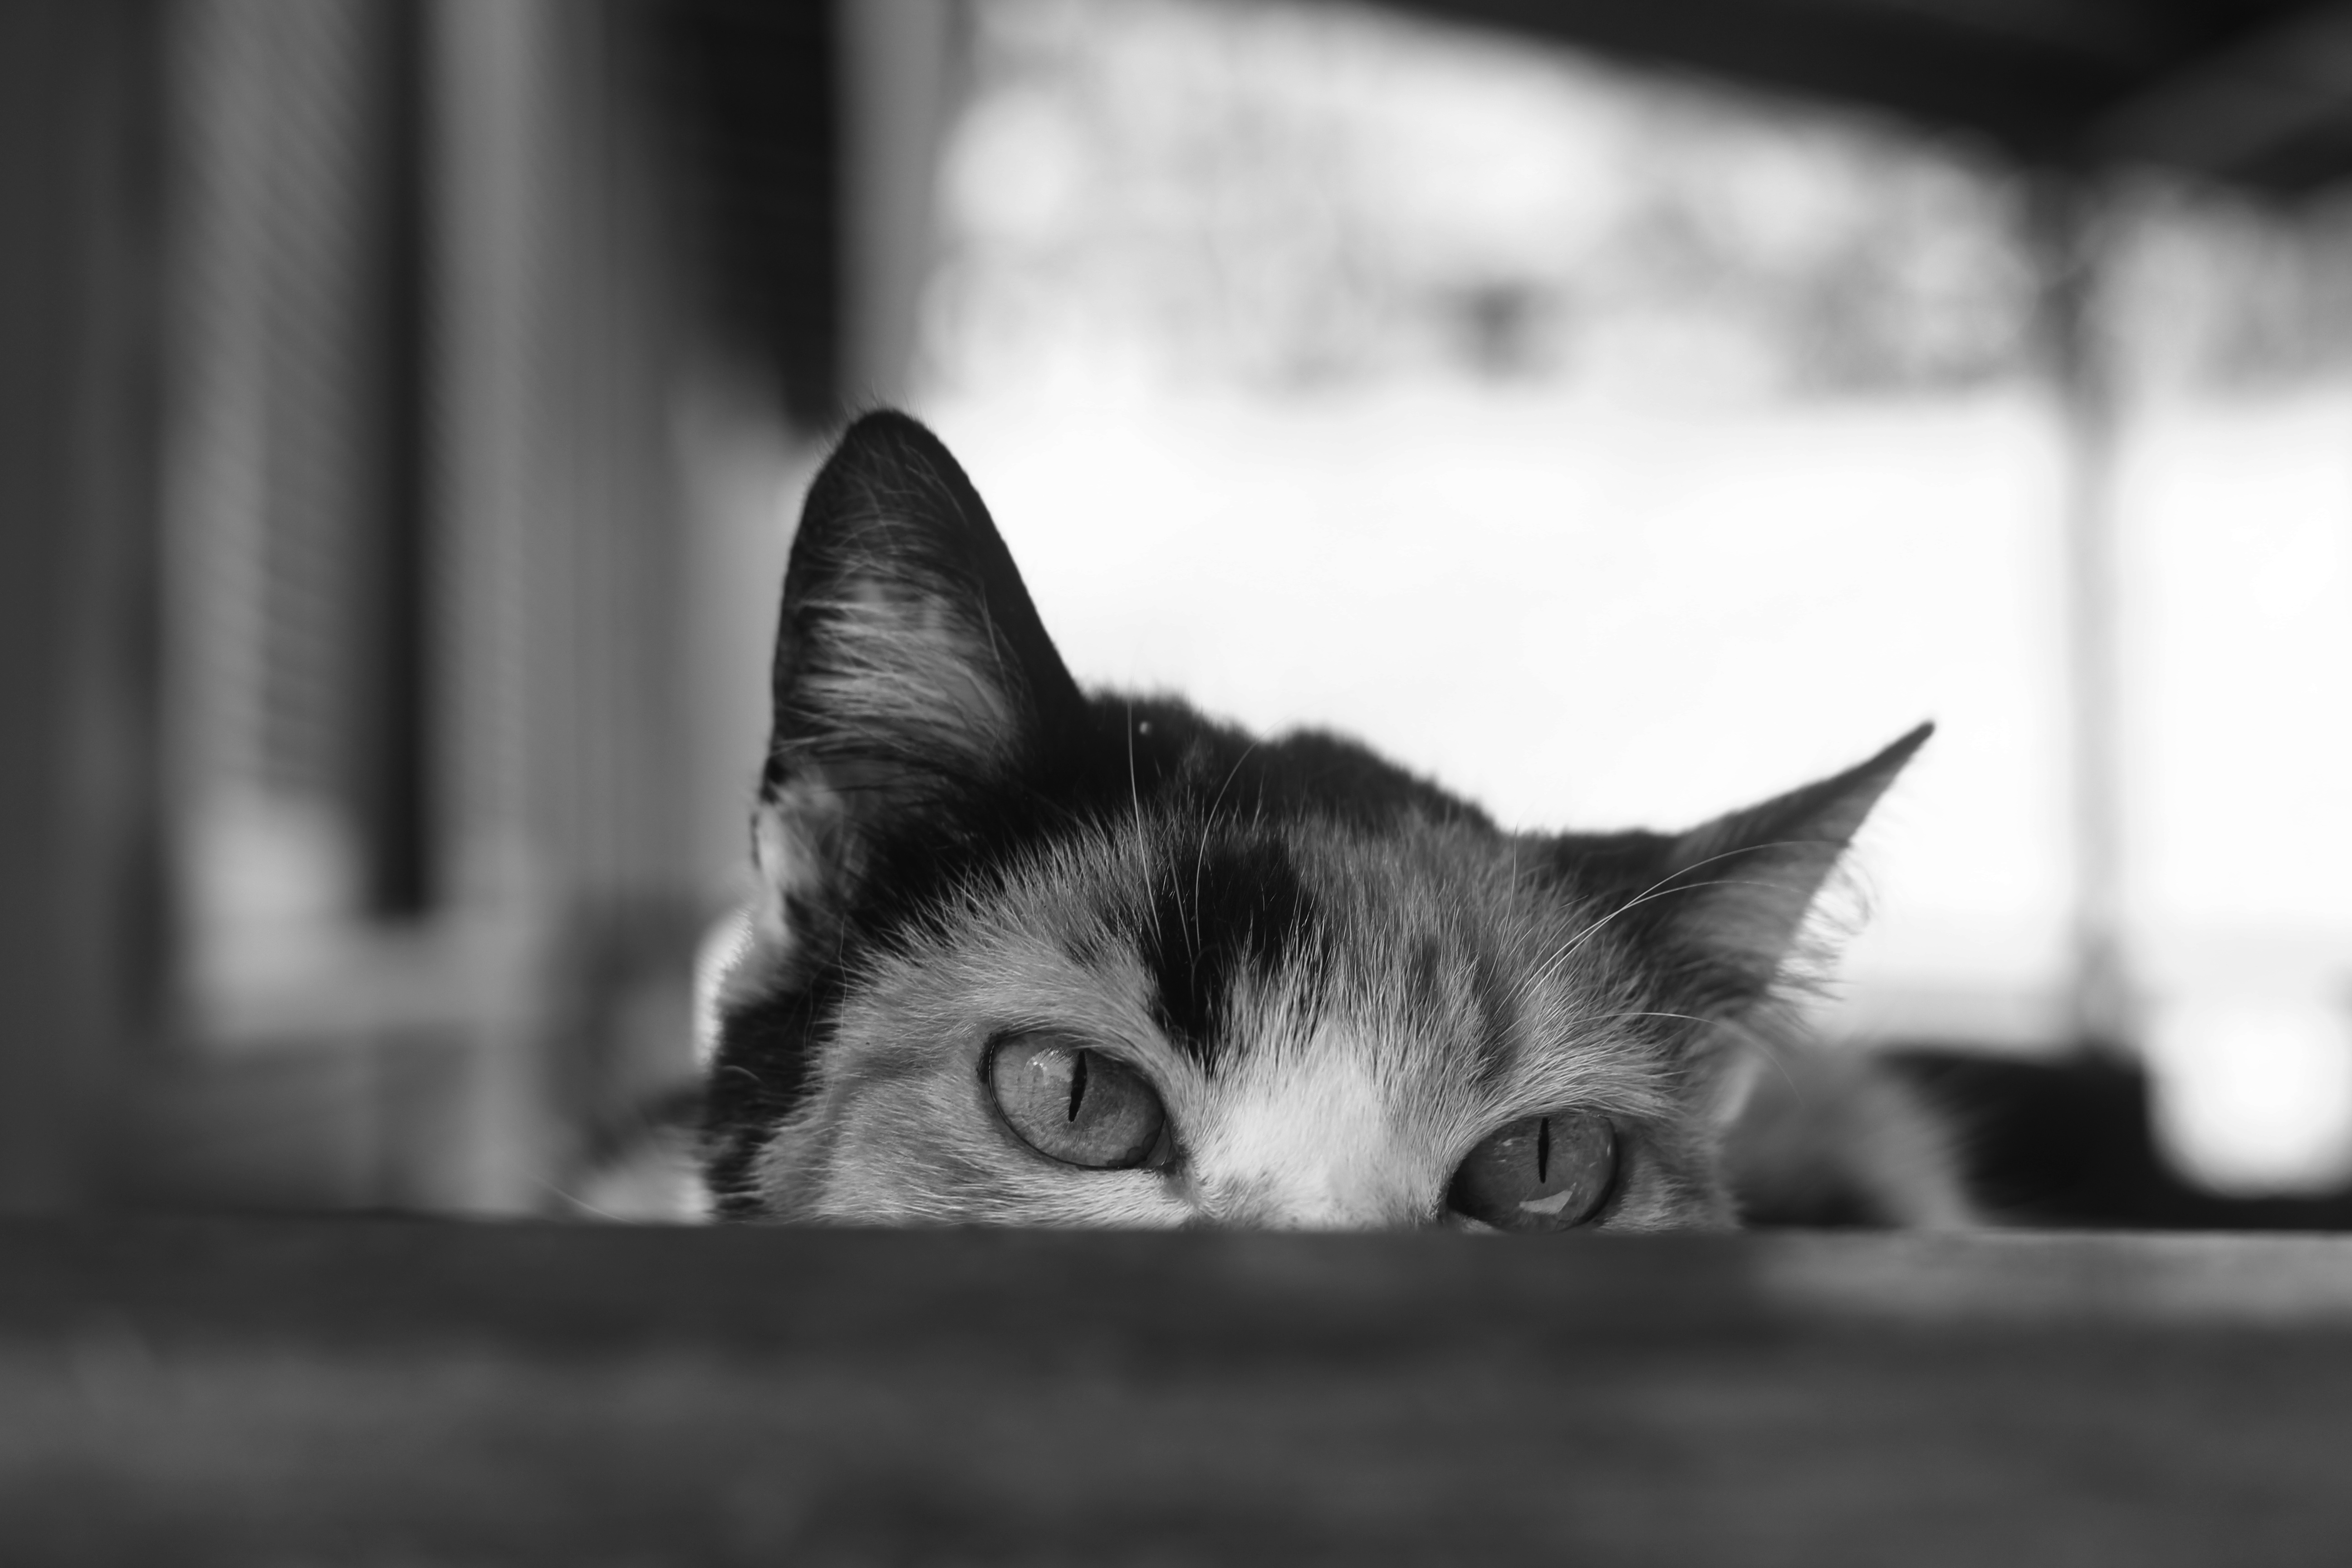 68076 download wallpaper Animals, Cat, Bw, Chb, Eyes, Peek Out, Look Out, Ears screensavers and pictures for free